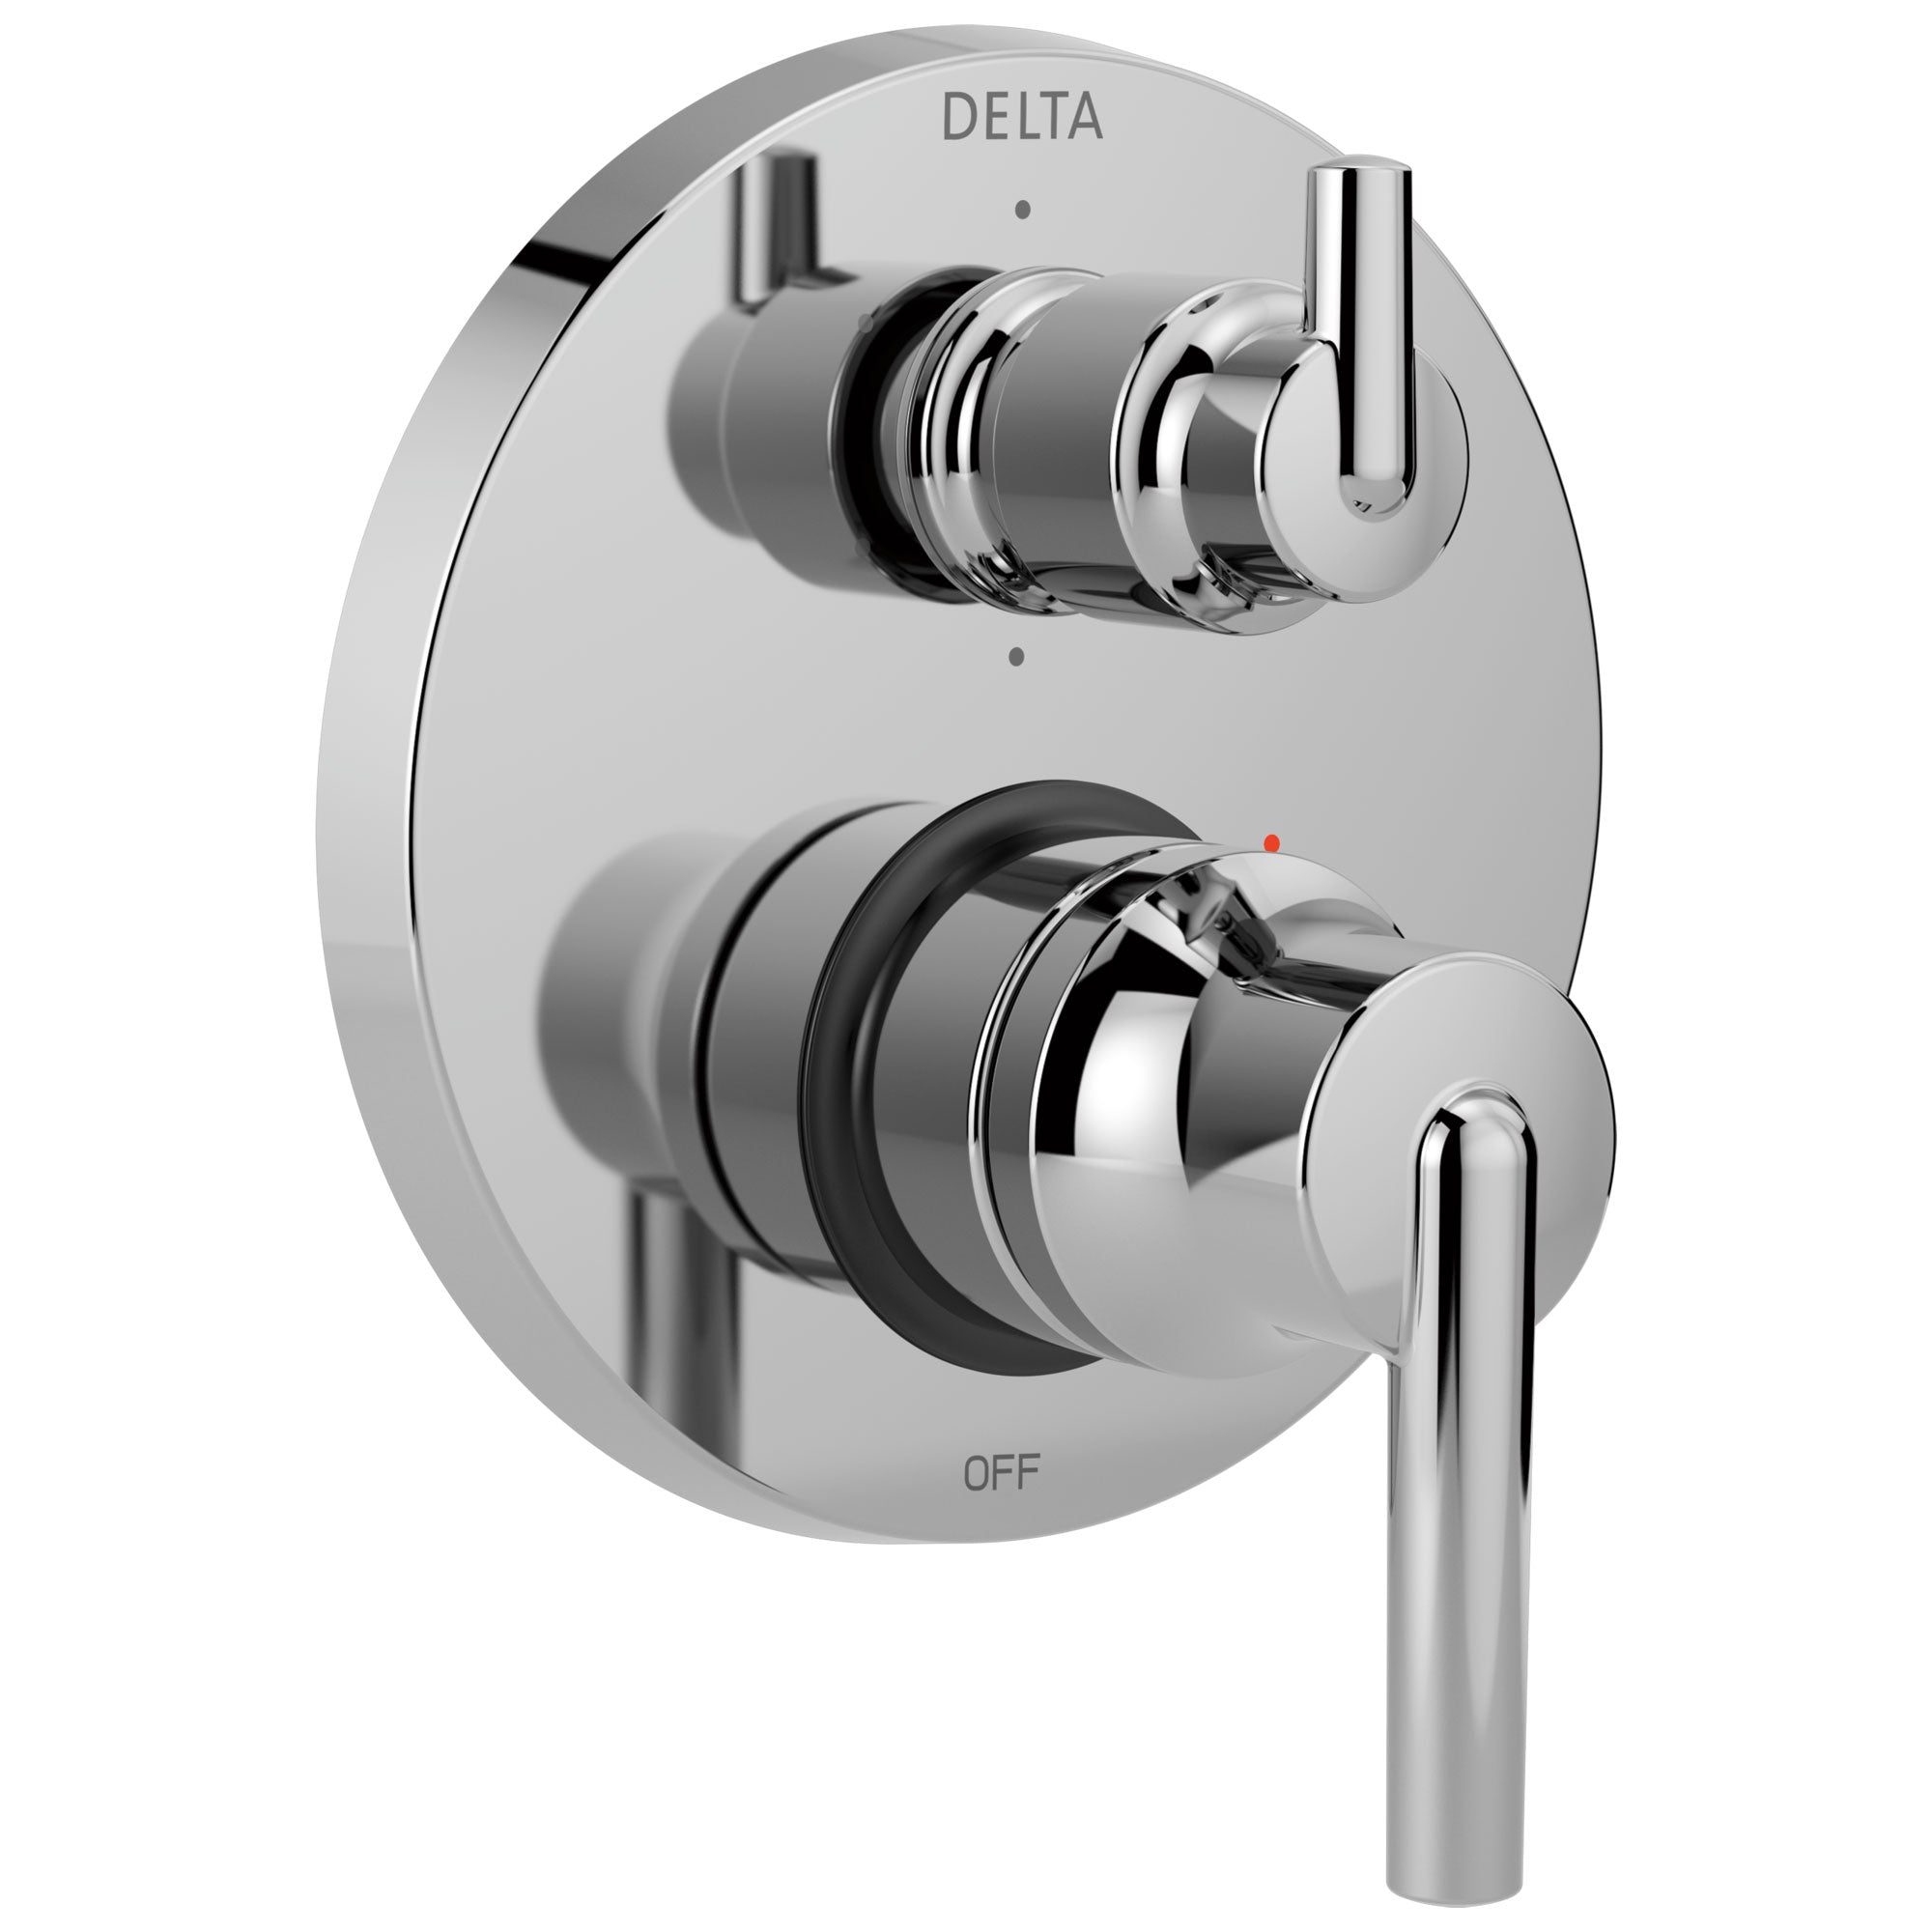 Delta Trinsic Collection Chrome Contemporary Monitor 14 Shower Faucet Control Handle with 6-Setting Integrated Diverter Trim (Requires Valve) DT24959